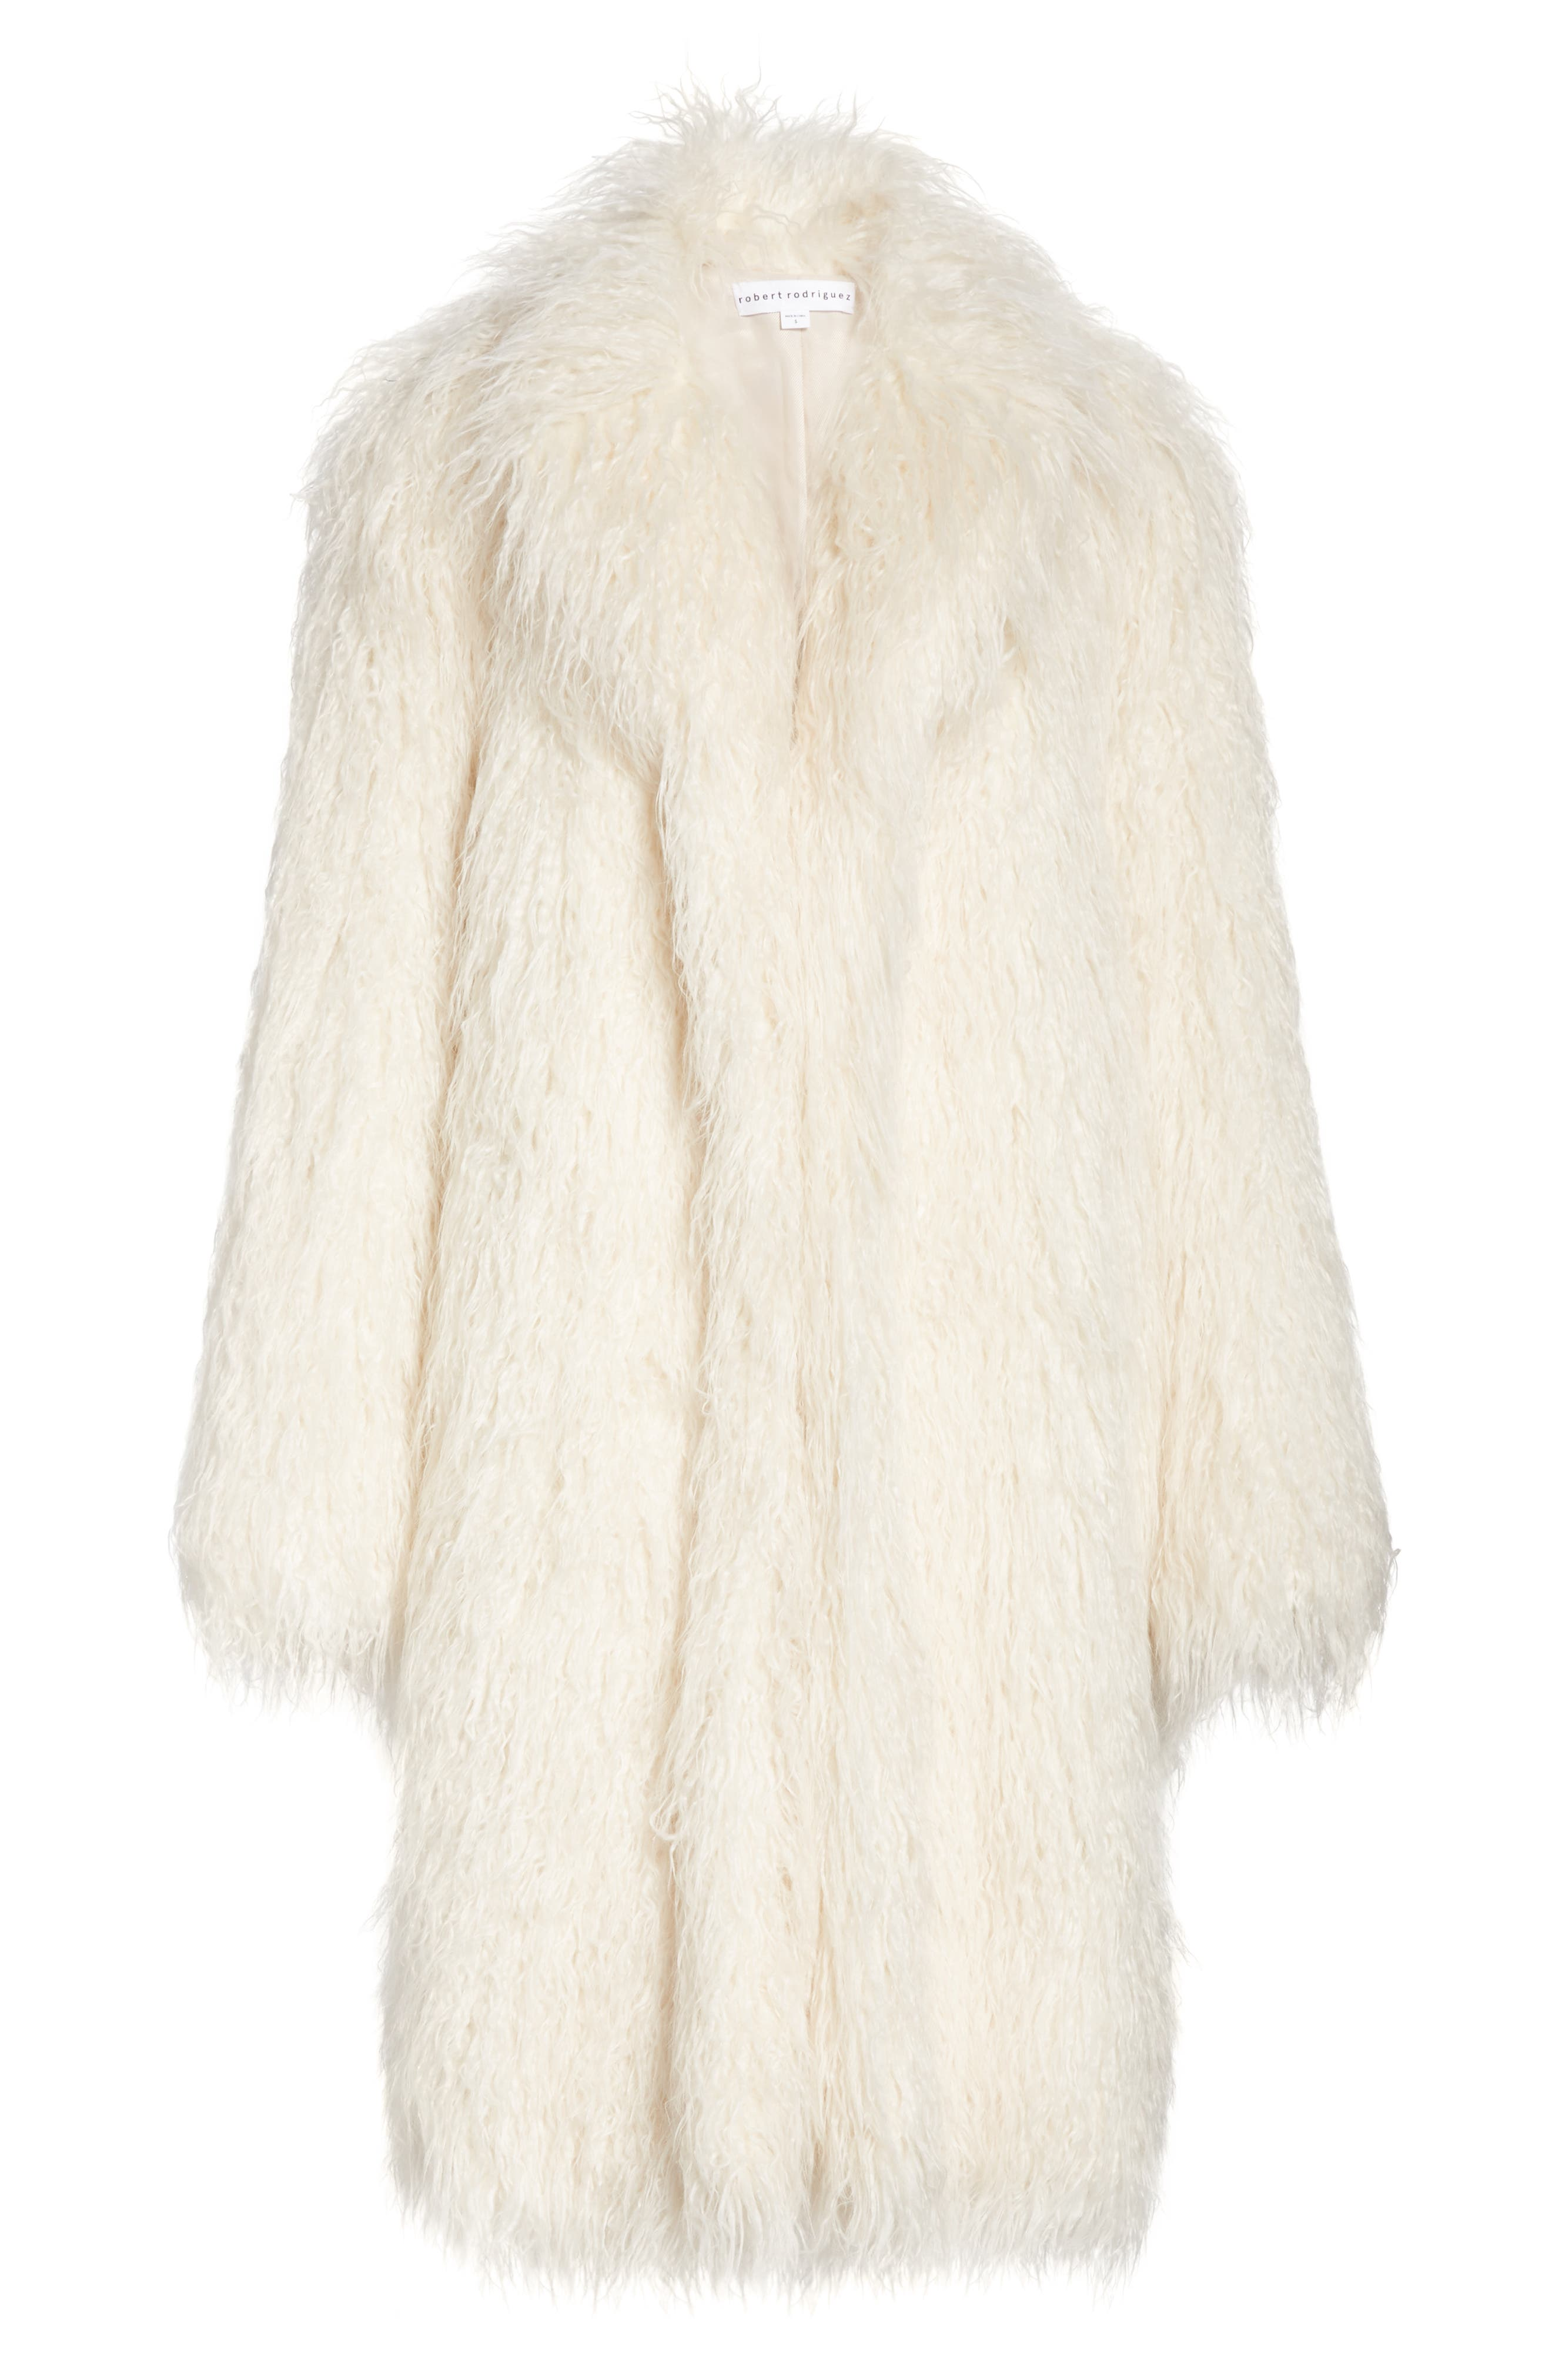 Mongolian Faux Fur Coat,                             Alternate thumbnail 5, color,                             IVORY